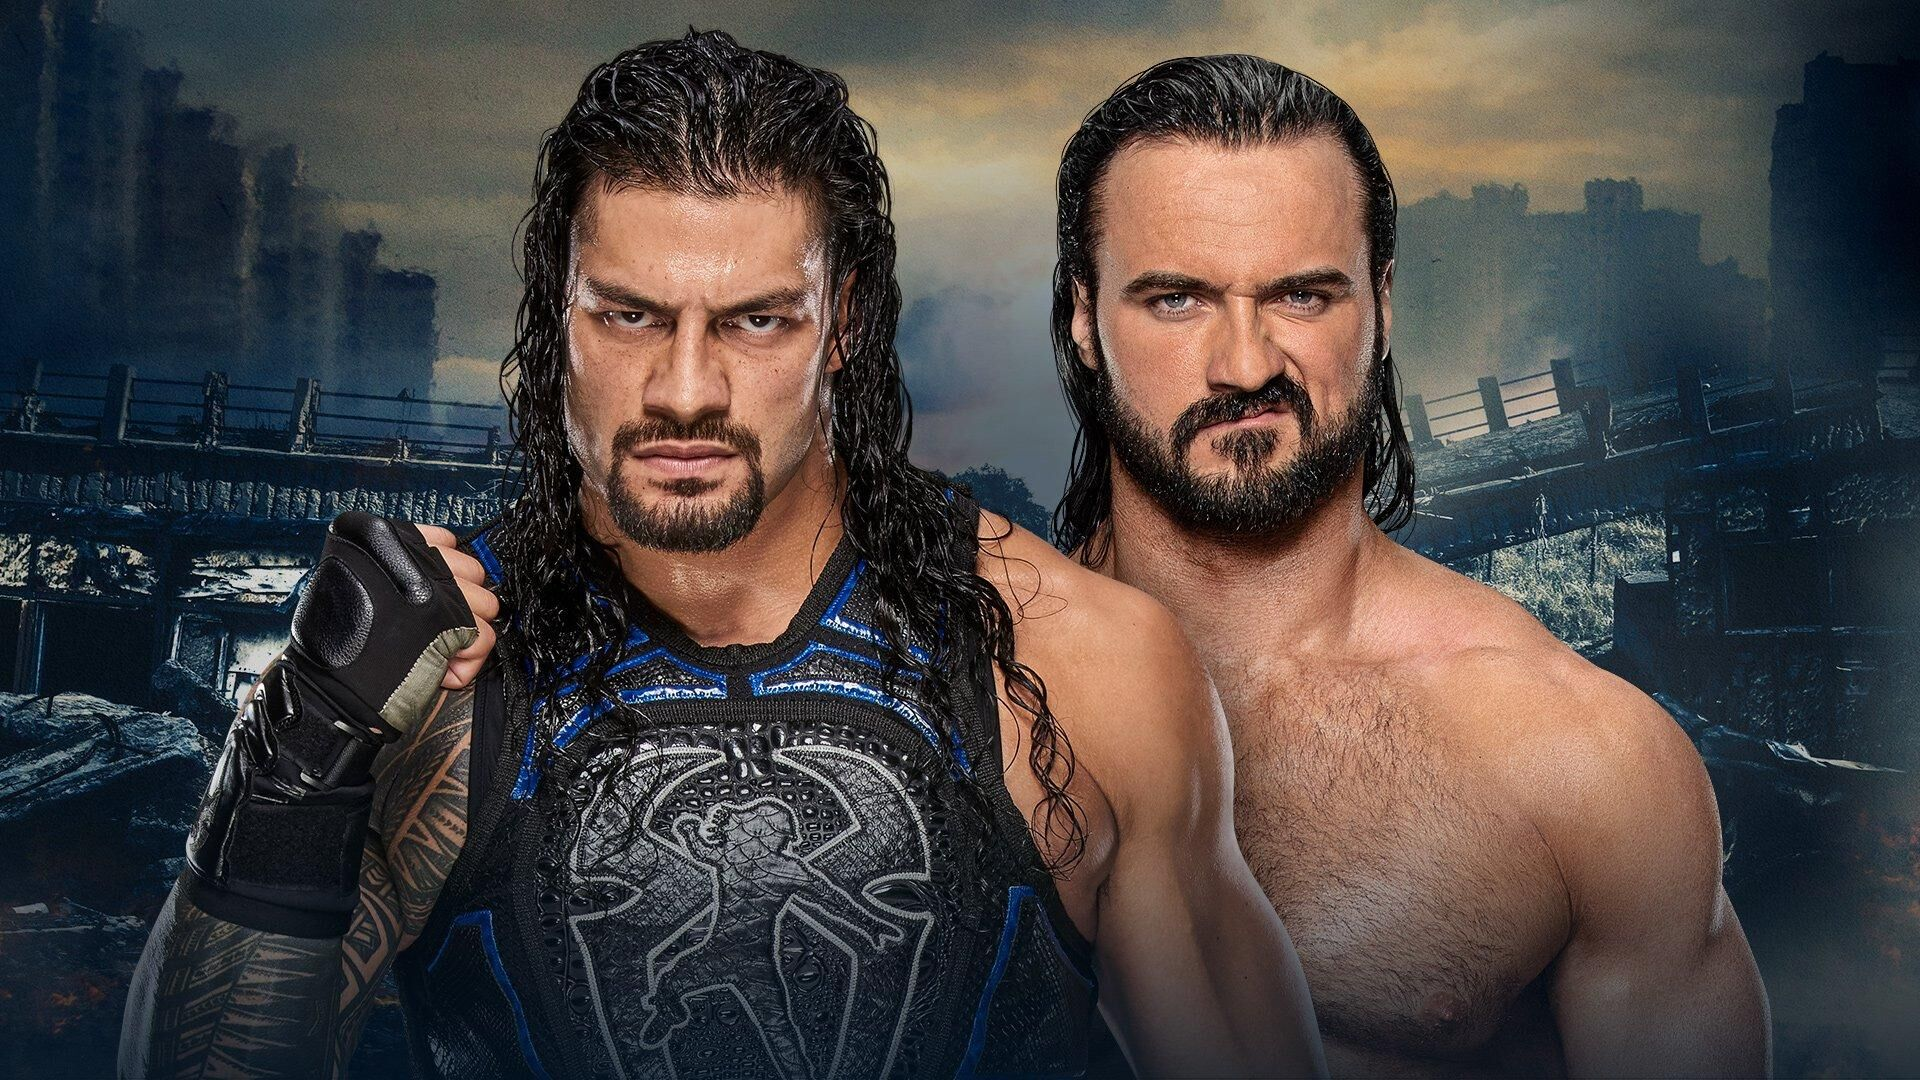 WWE Stomping Grounds Preview: Roman Reigns vs. Drew McIntyre